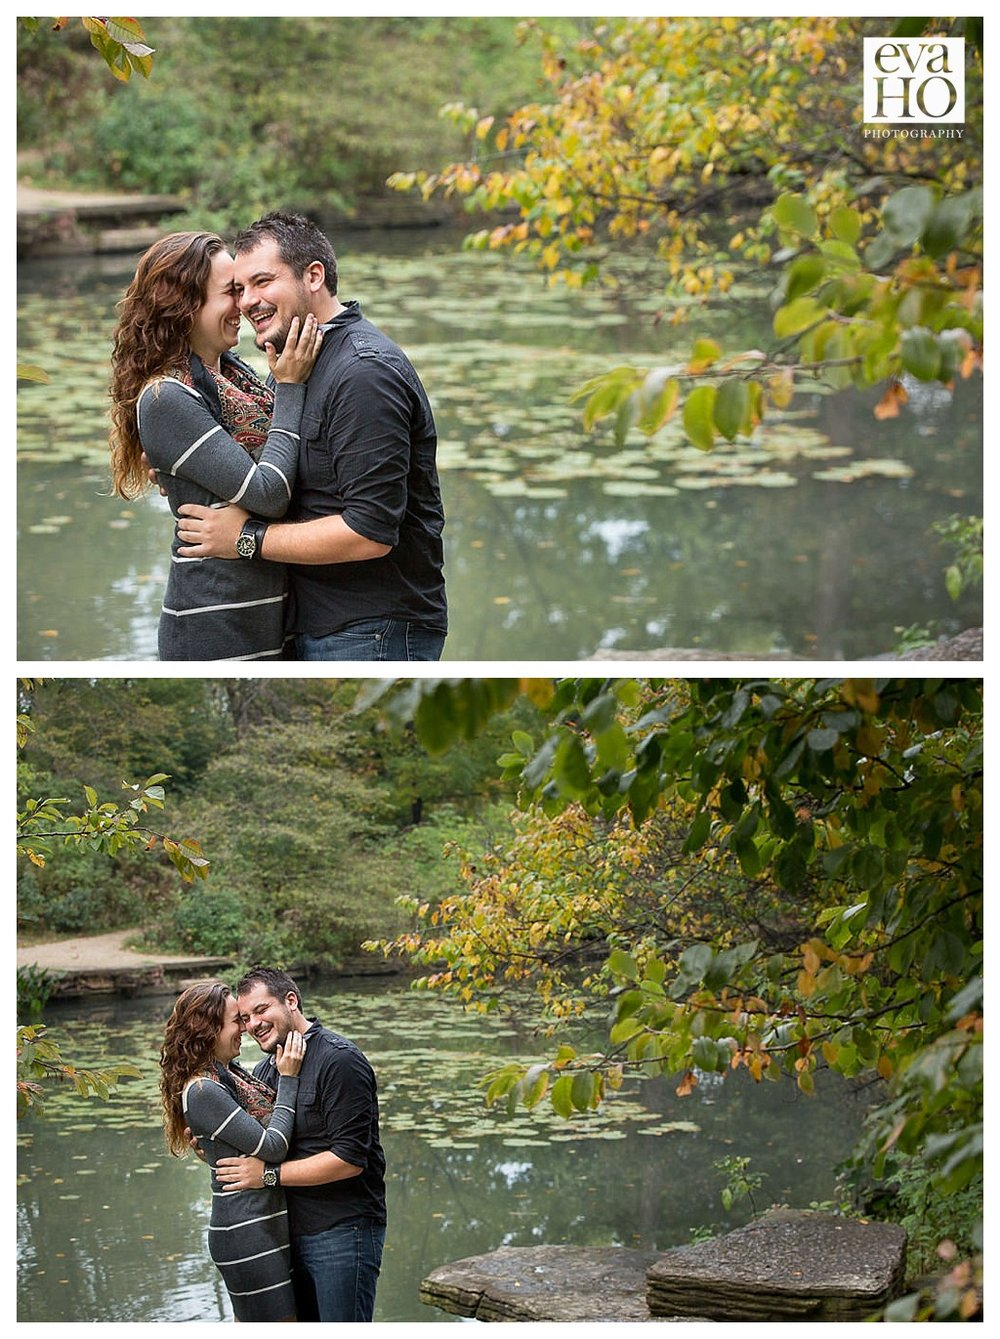 Alison and Jim's engagement session in Lincoln Park. The bride and groom-to-be love the Alfred Caldwell Lily Pond!